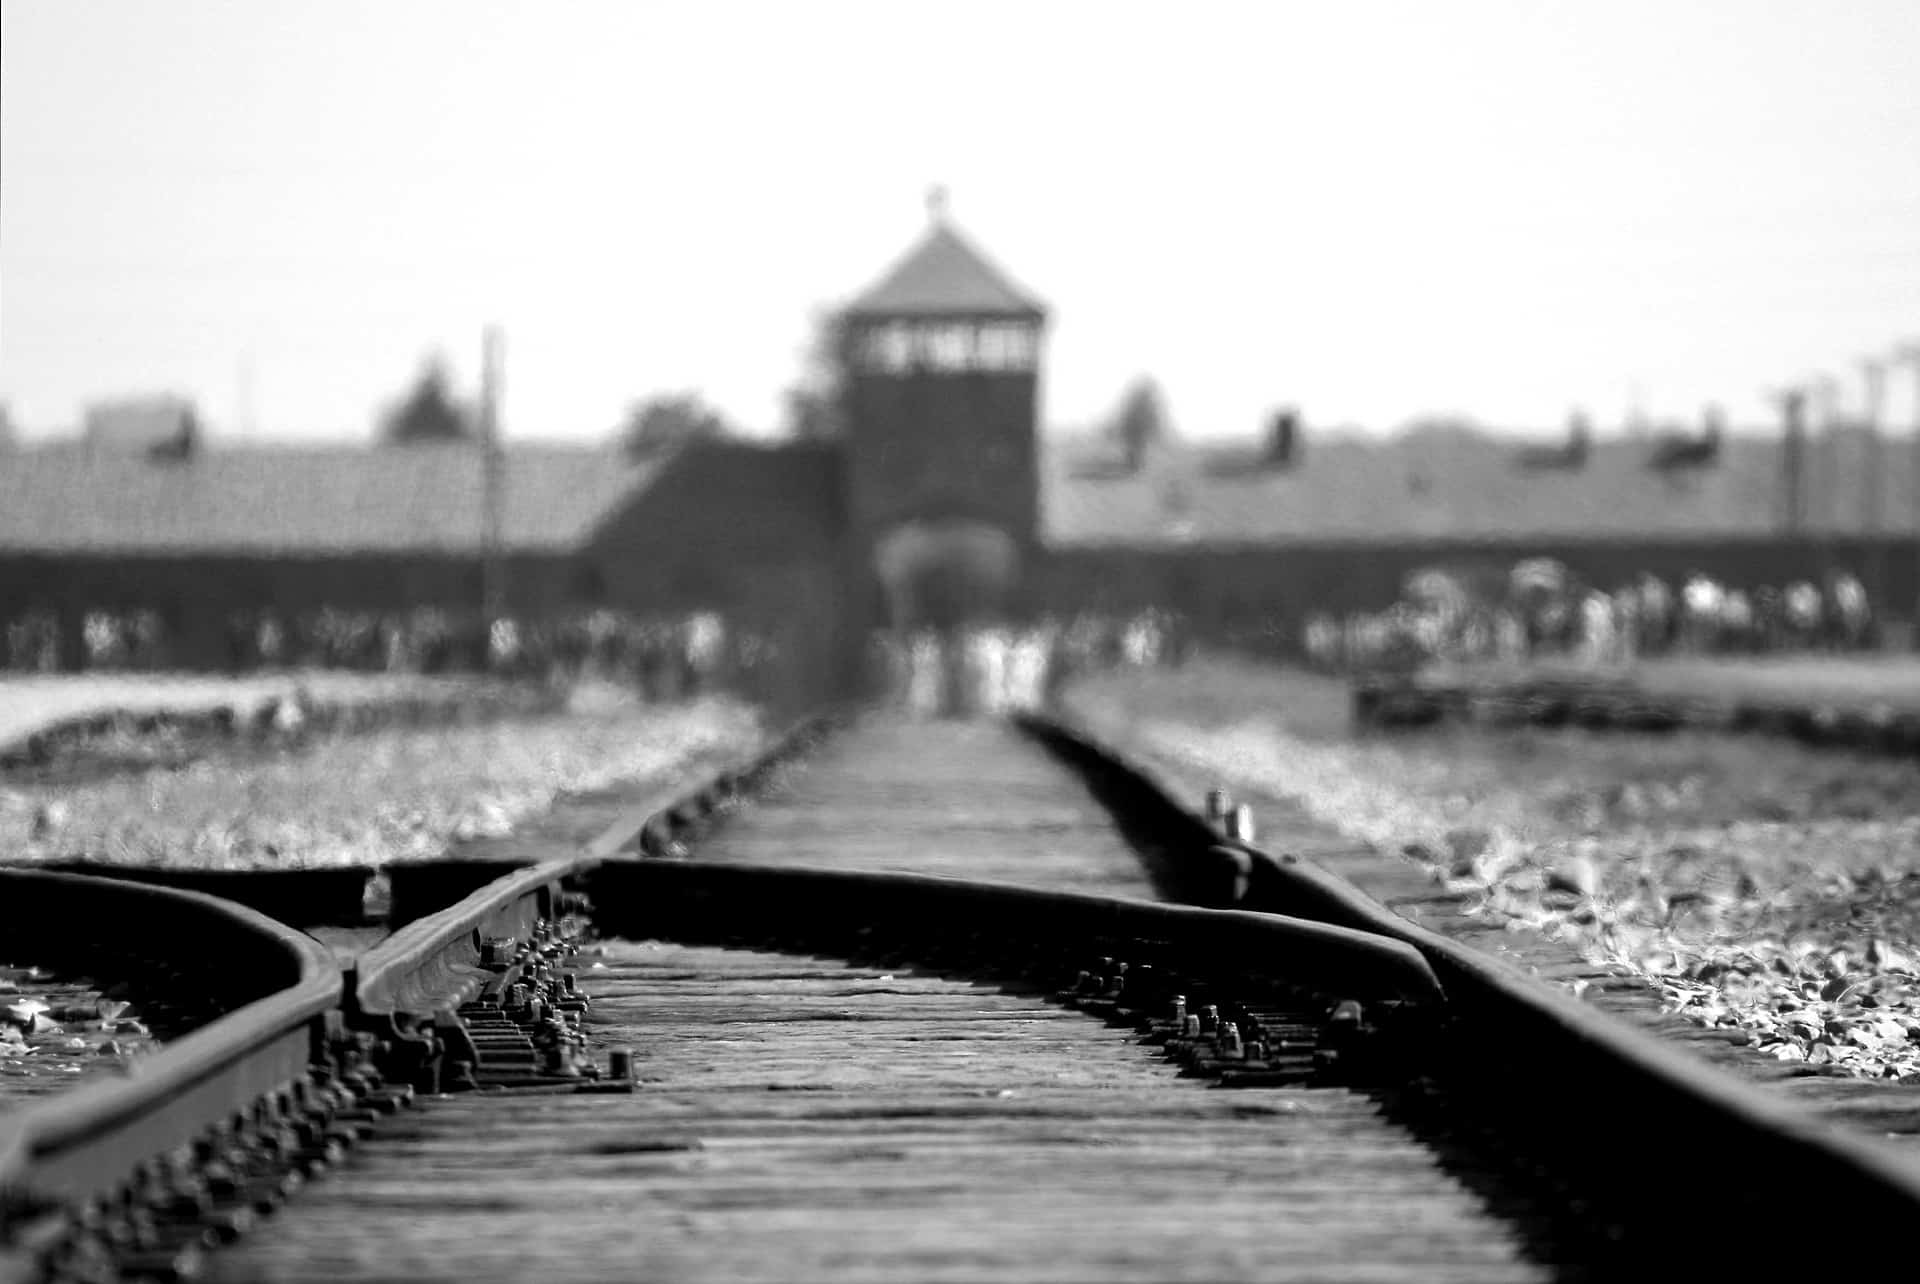 Details and useful information of Auschwitz